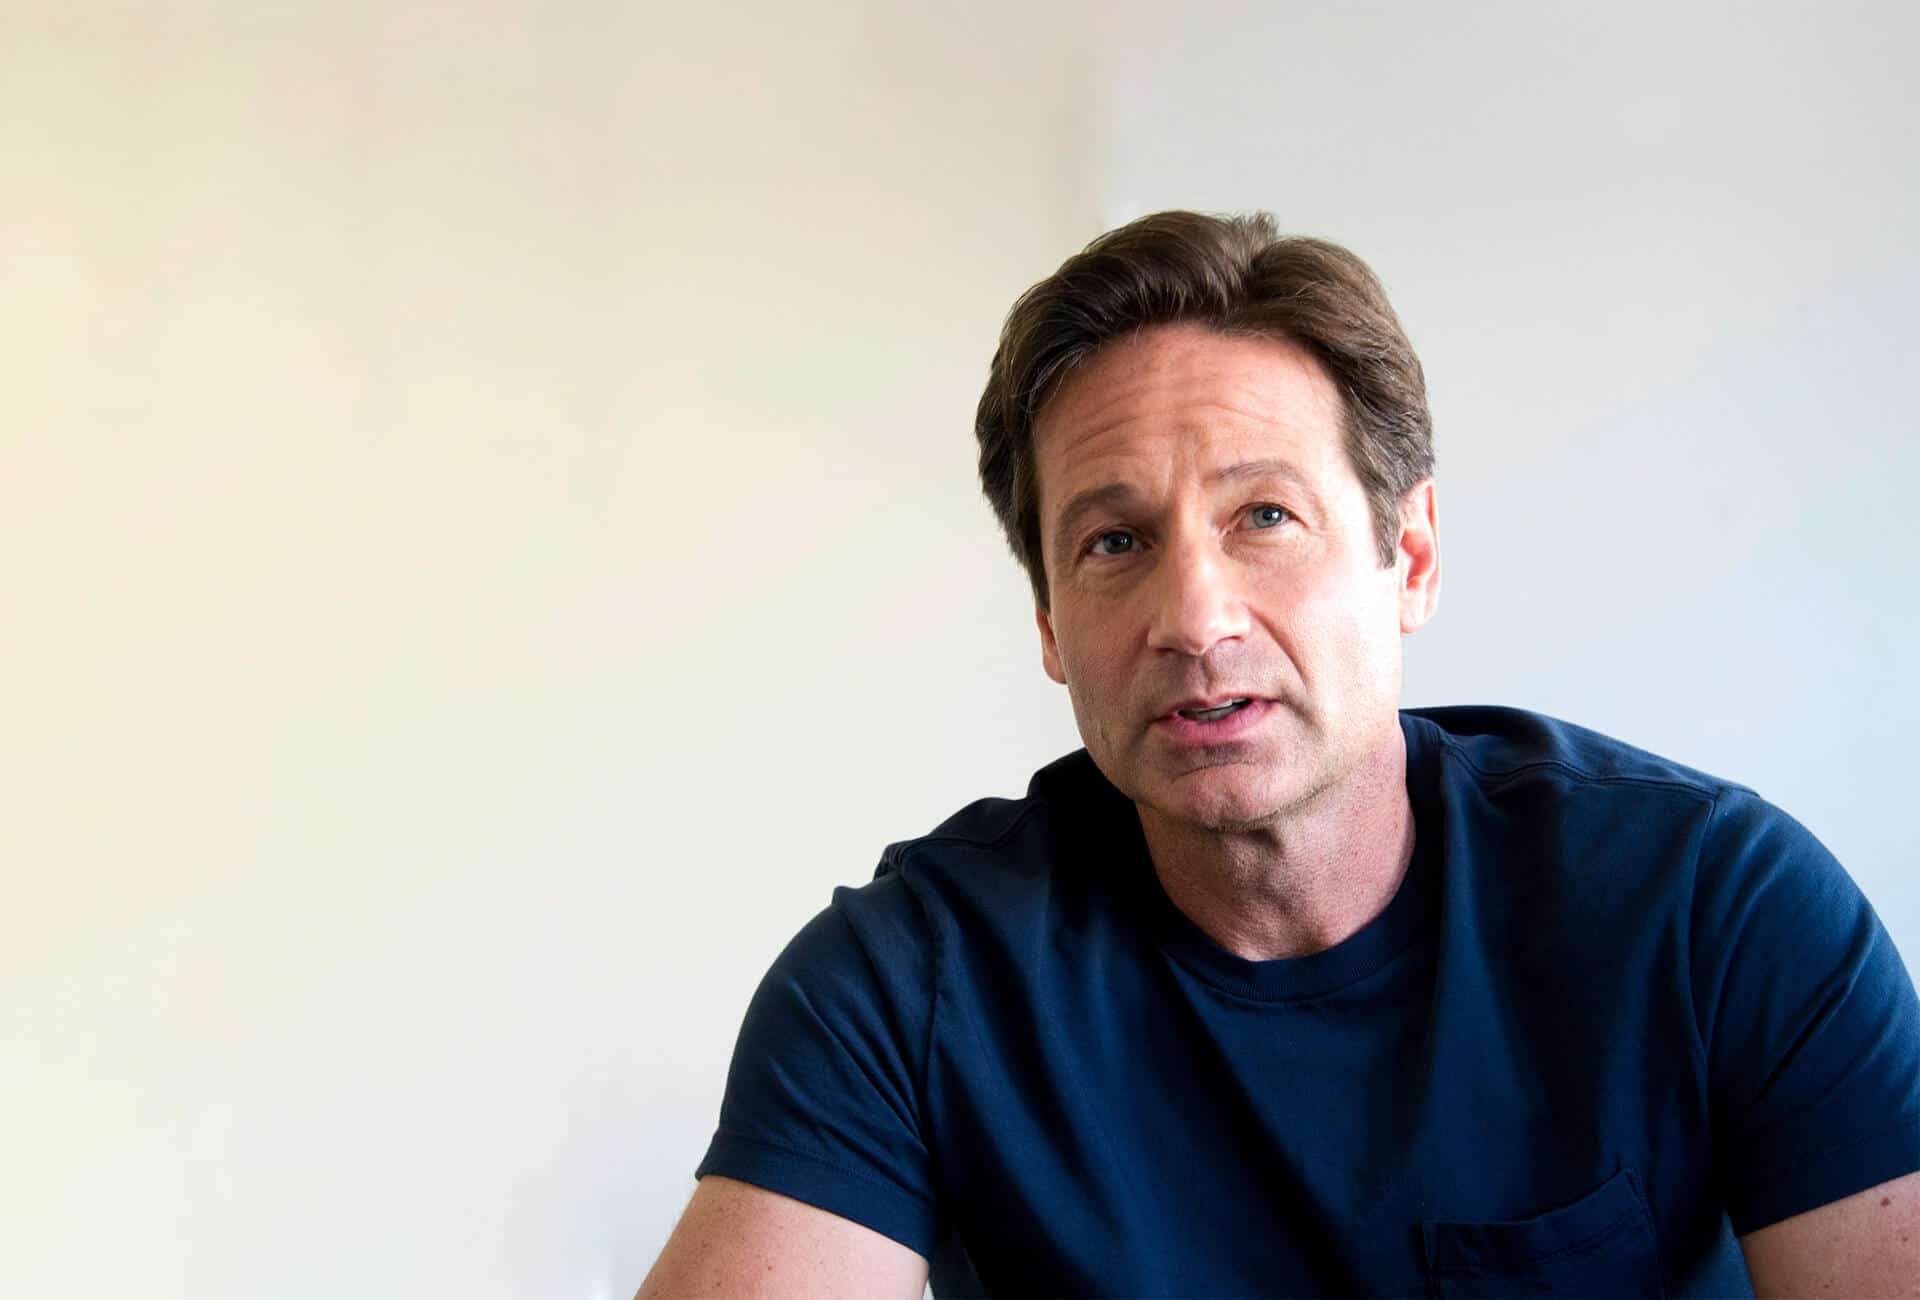 David Duchovny spouse